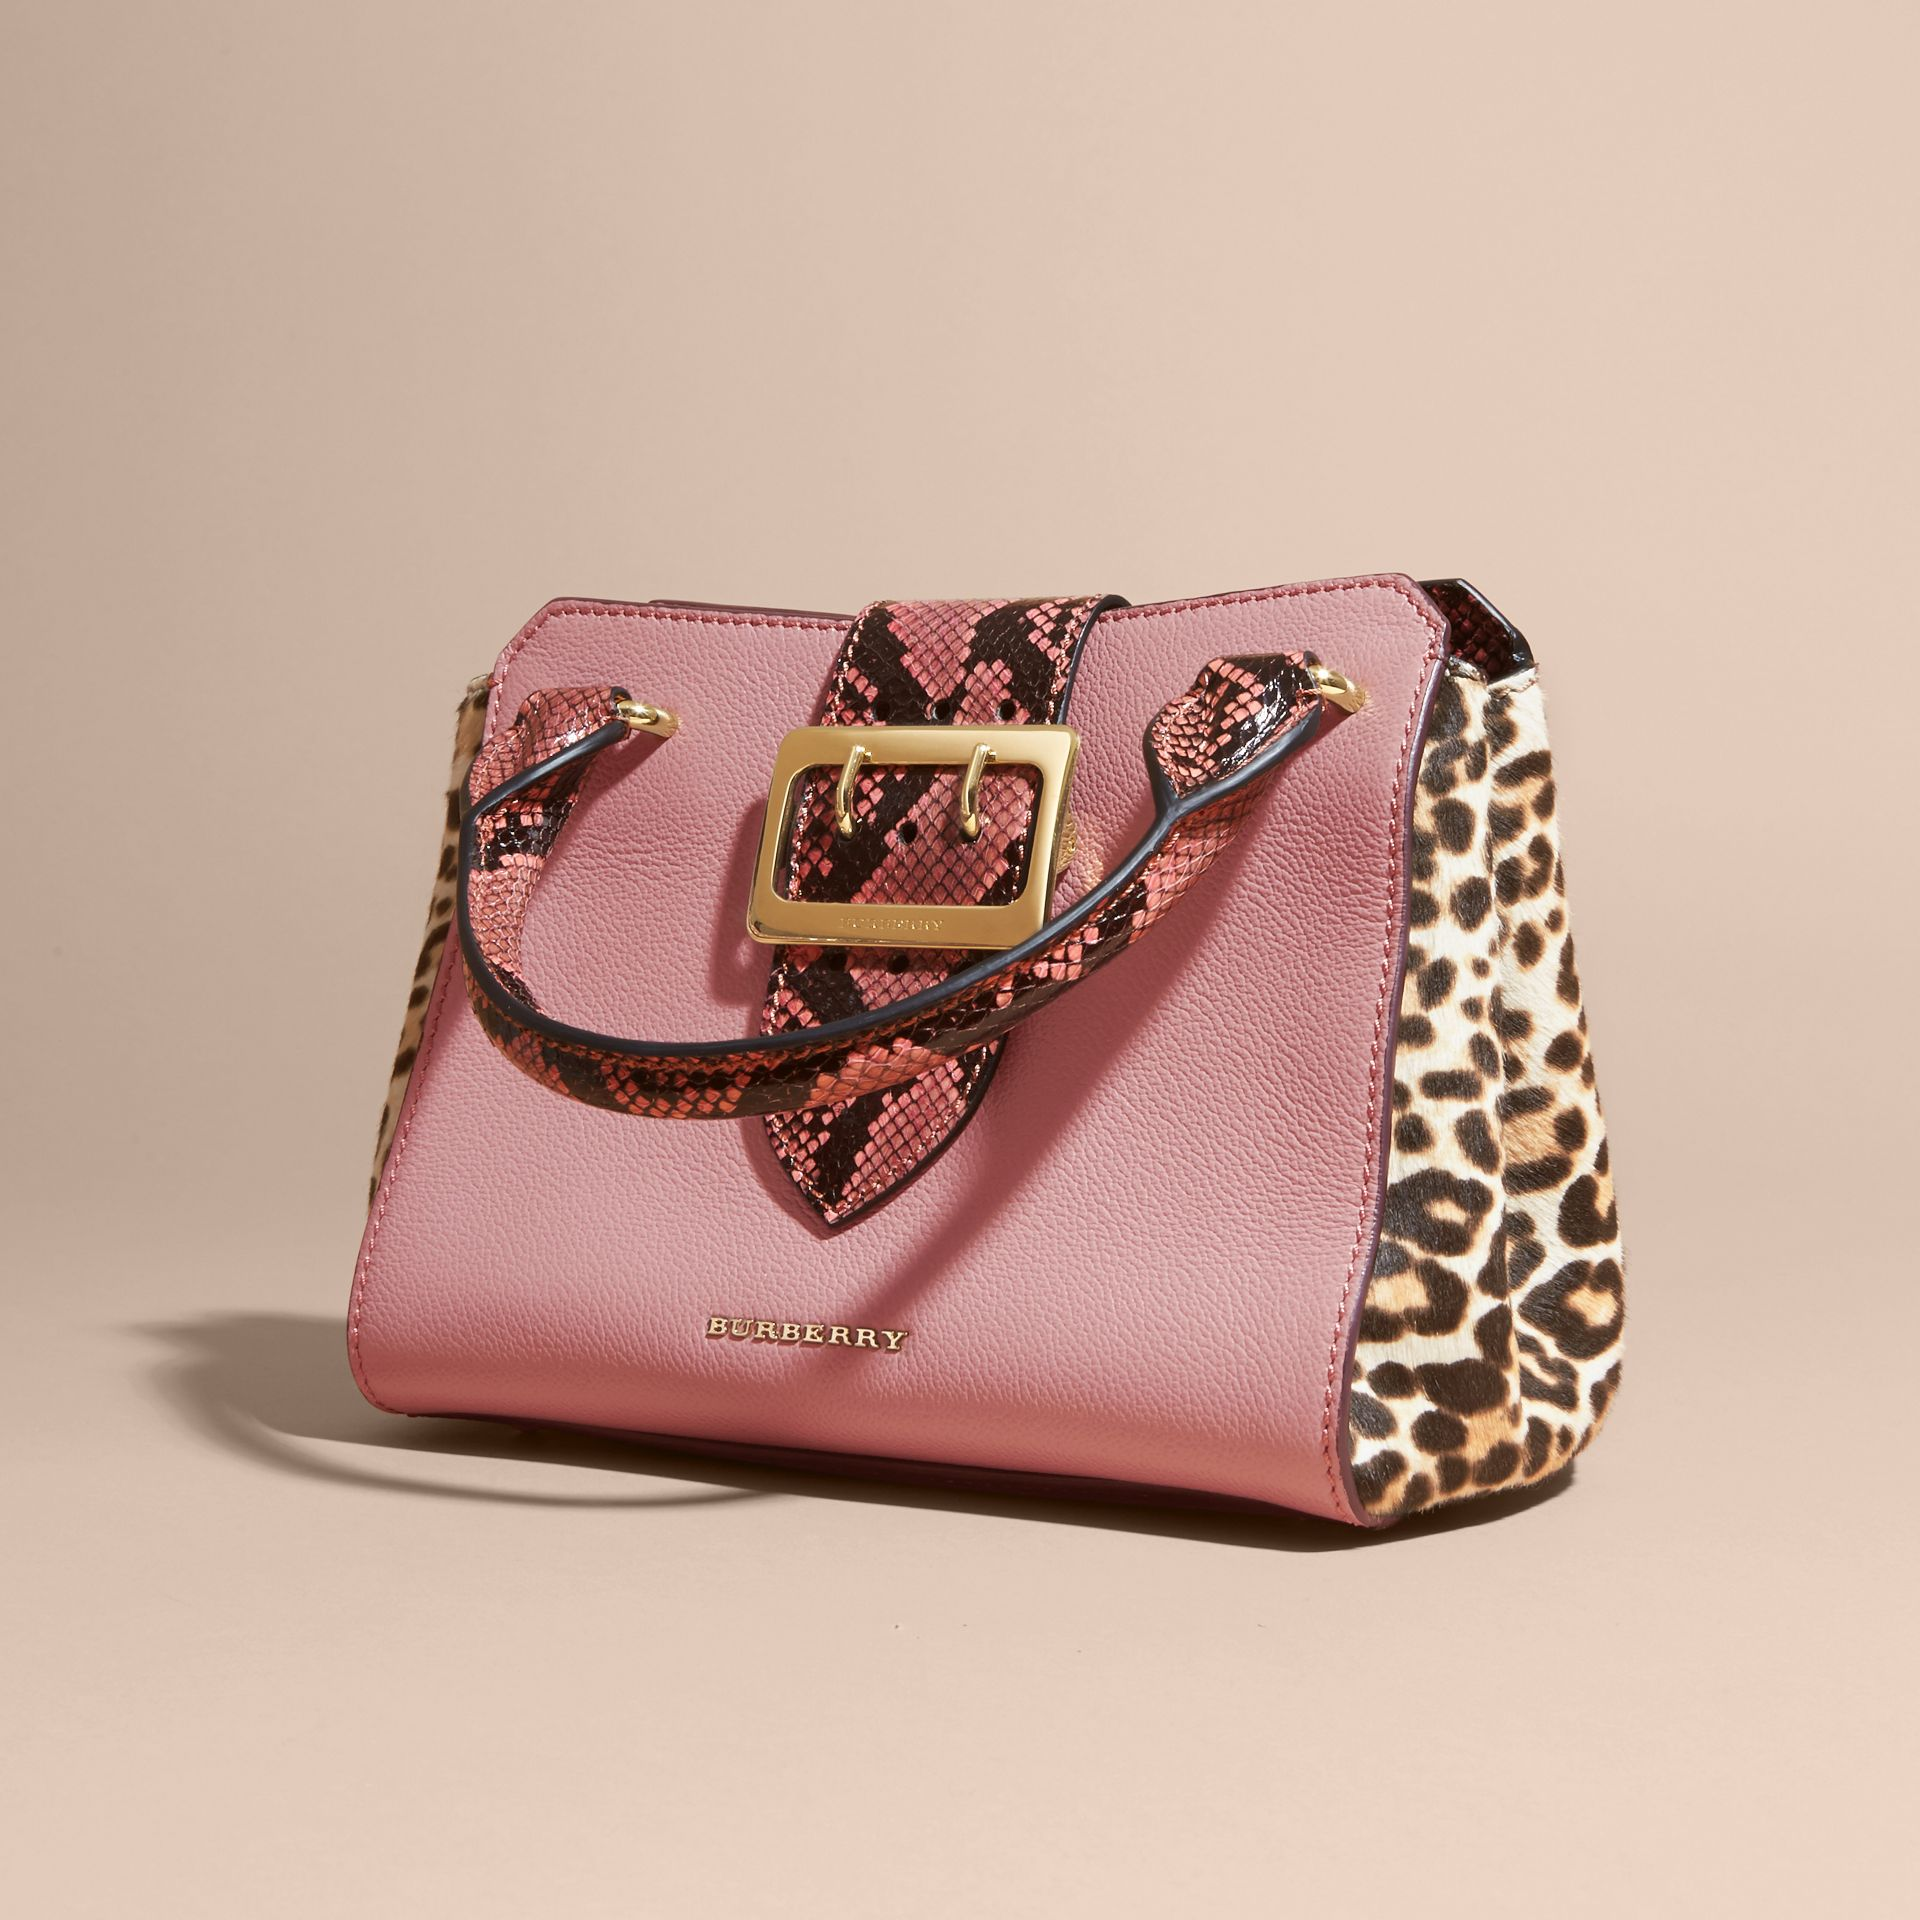 Dusty pink The Small Buckle Tote in Leather and  Leopard-print Calfskin Dusty Pink - gallery image 8